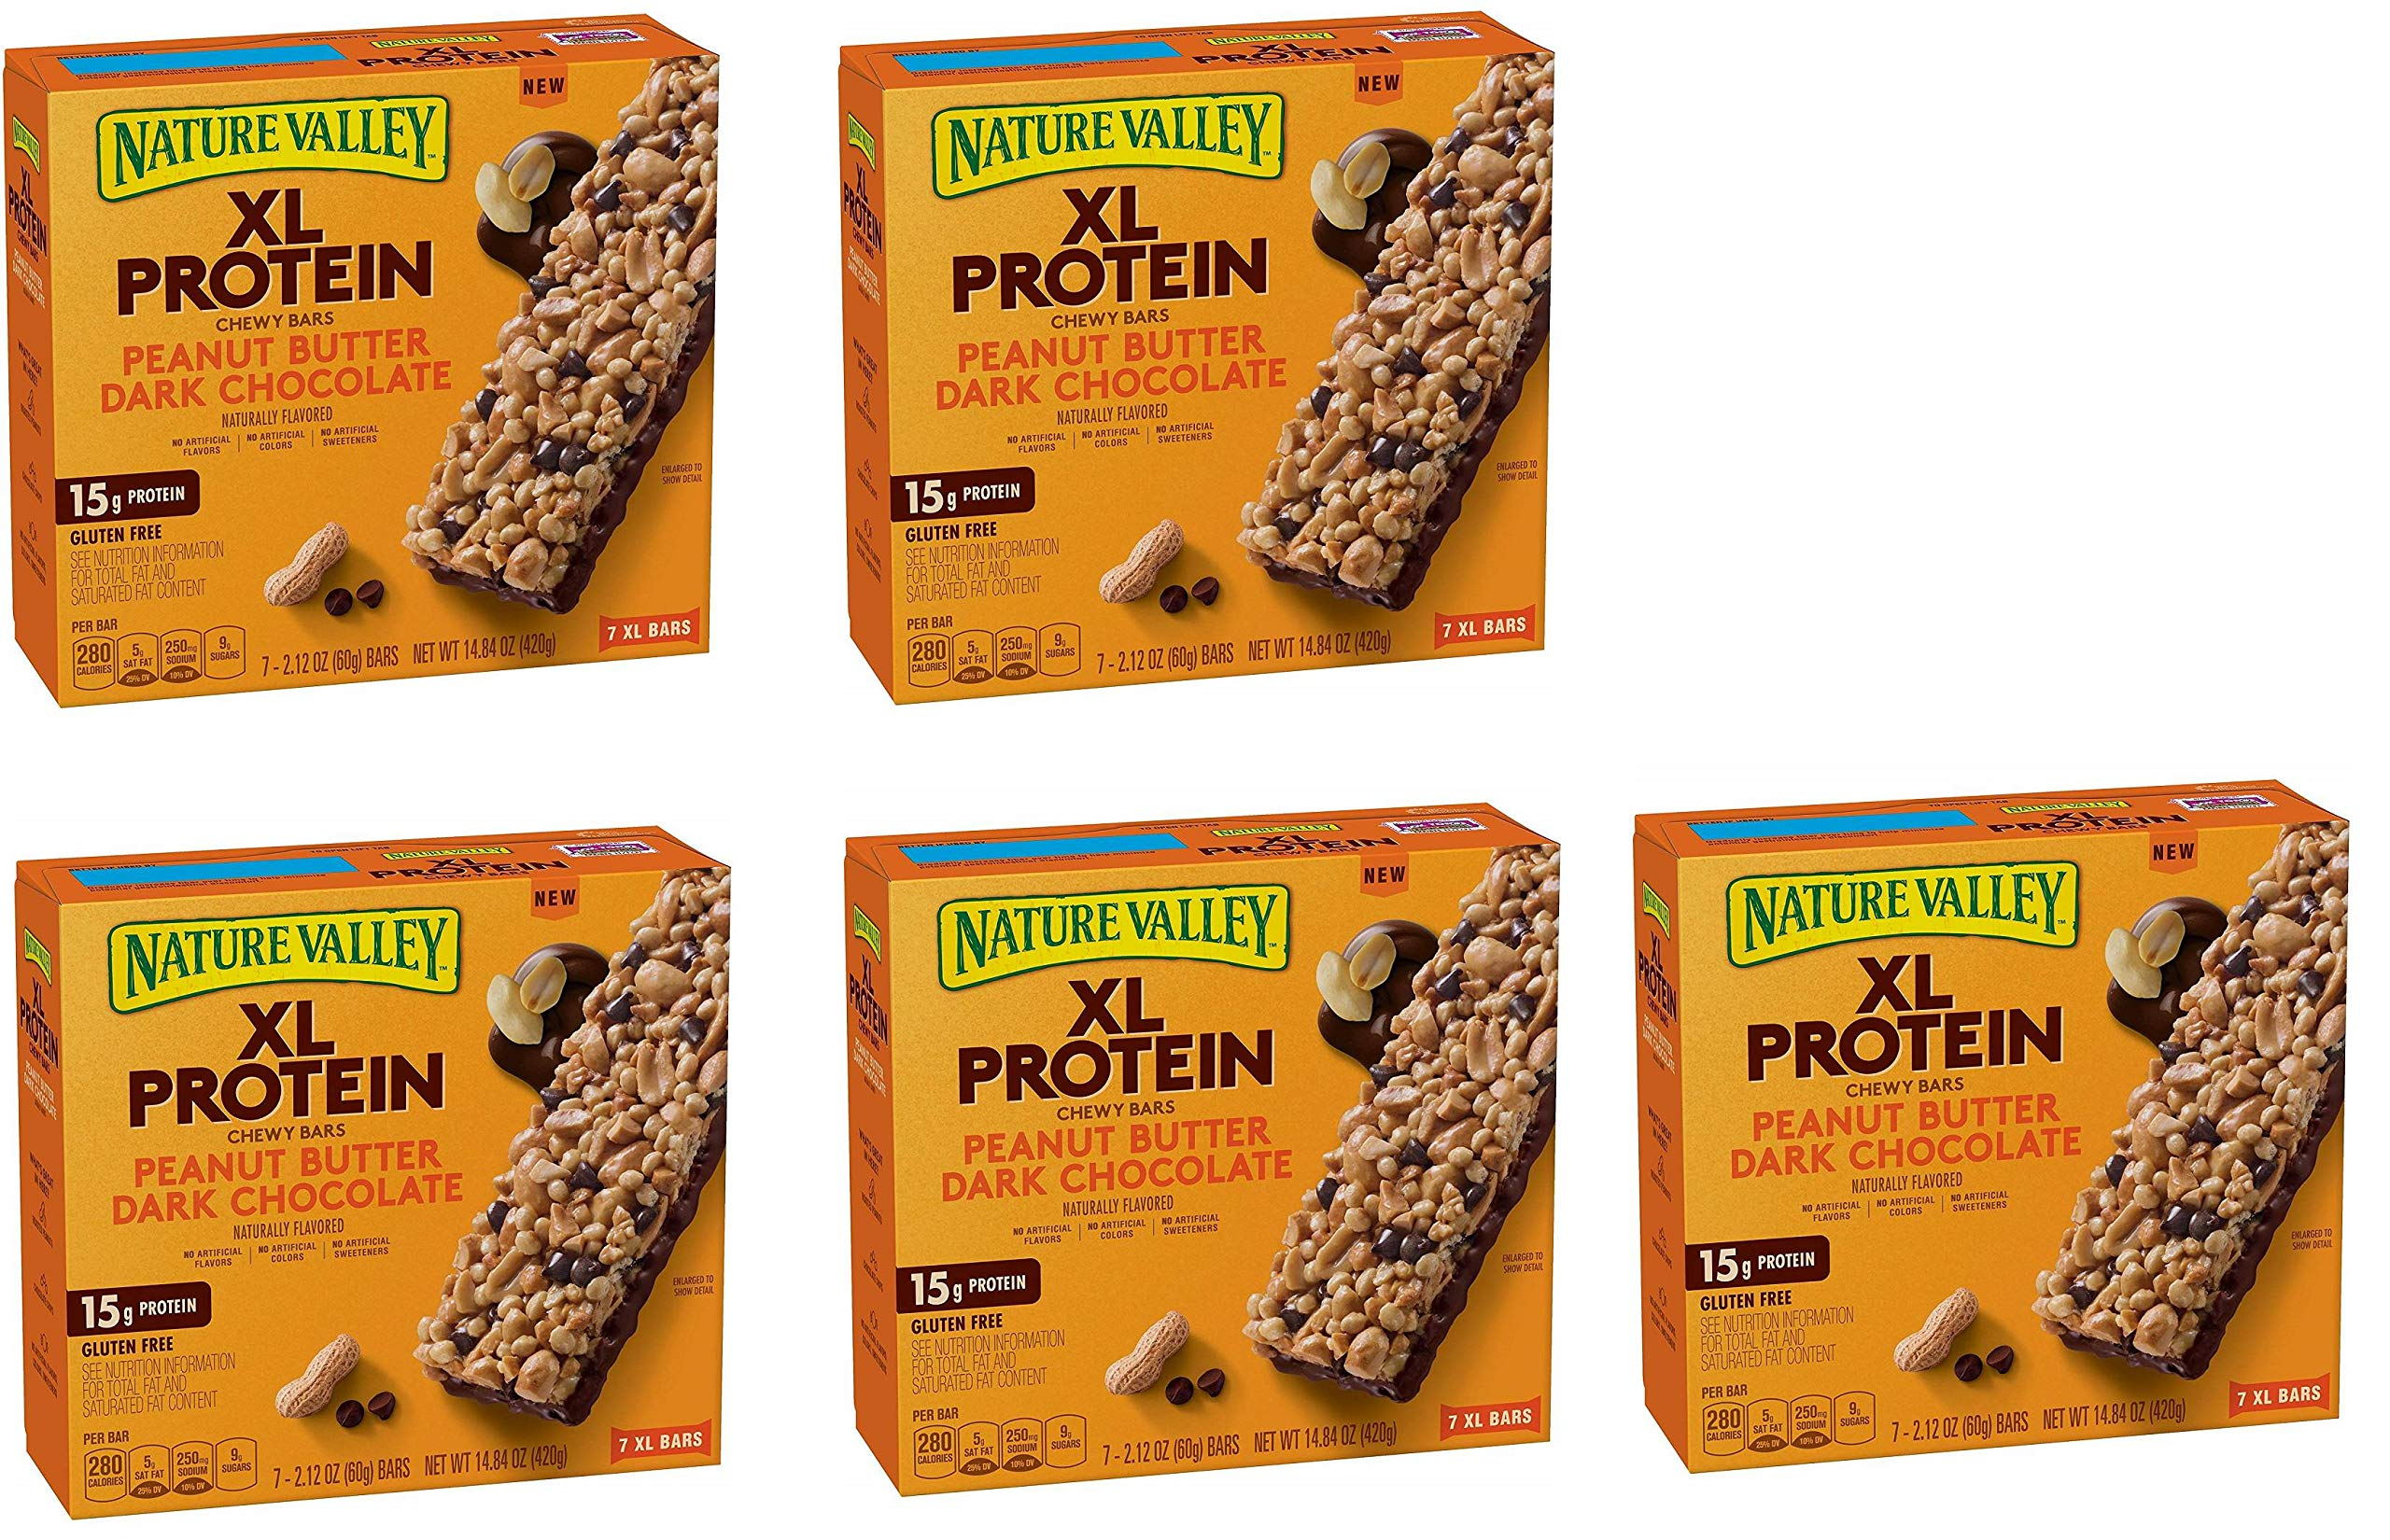 Nature Valley Chewy Granola Bar, XL Protein, Gluten Free, Peanut Butter Dark Chocolate, 7 Bars, 2.12 oz, 42 Bars (5 Boxes)